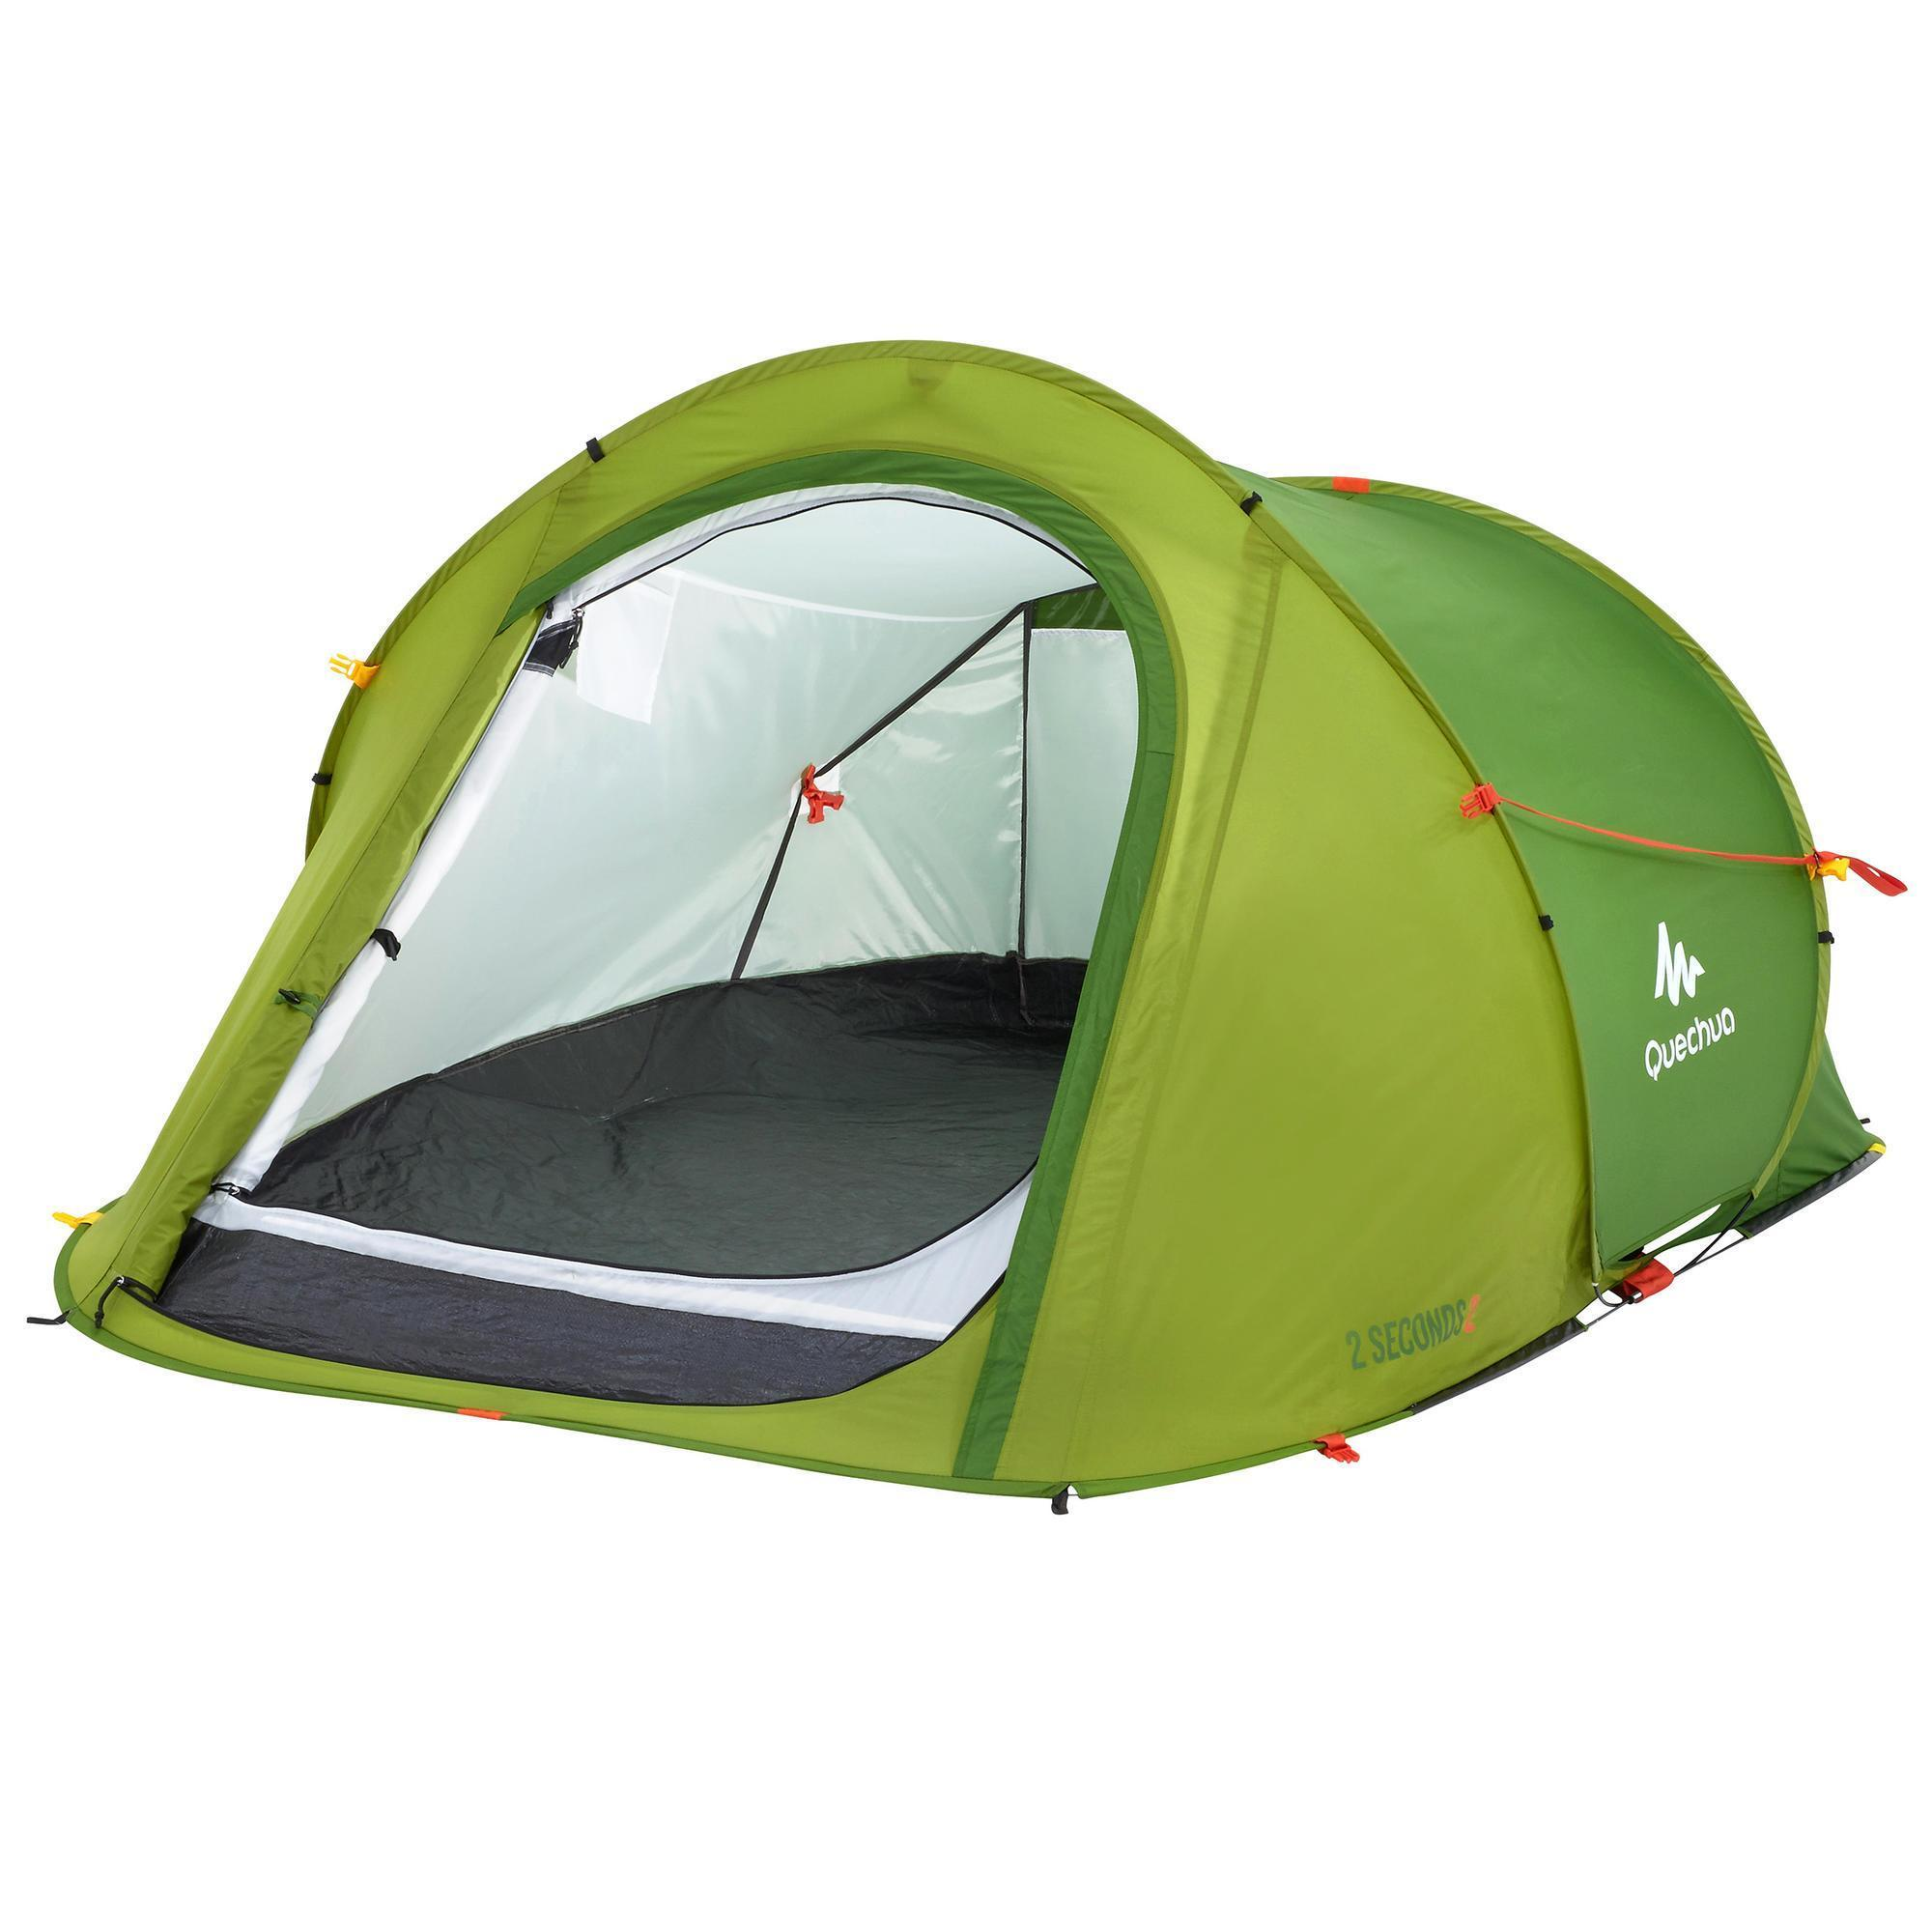 tente de camping 2 seconds 2 personnes vert quechua. Black Bedroom Furniture Sets. Home Design Ideas